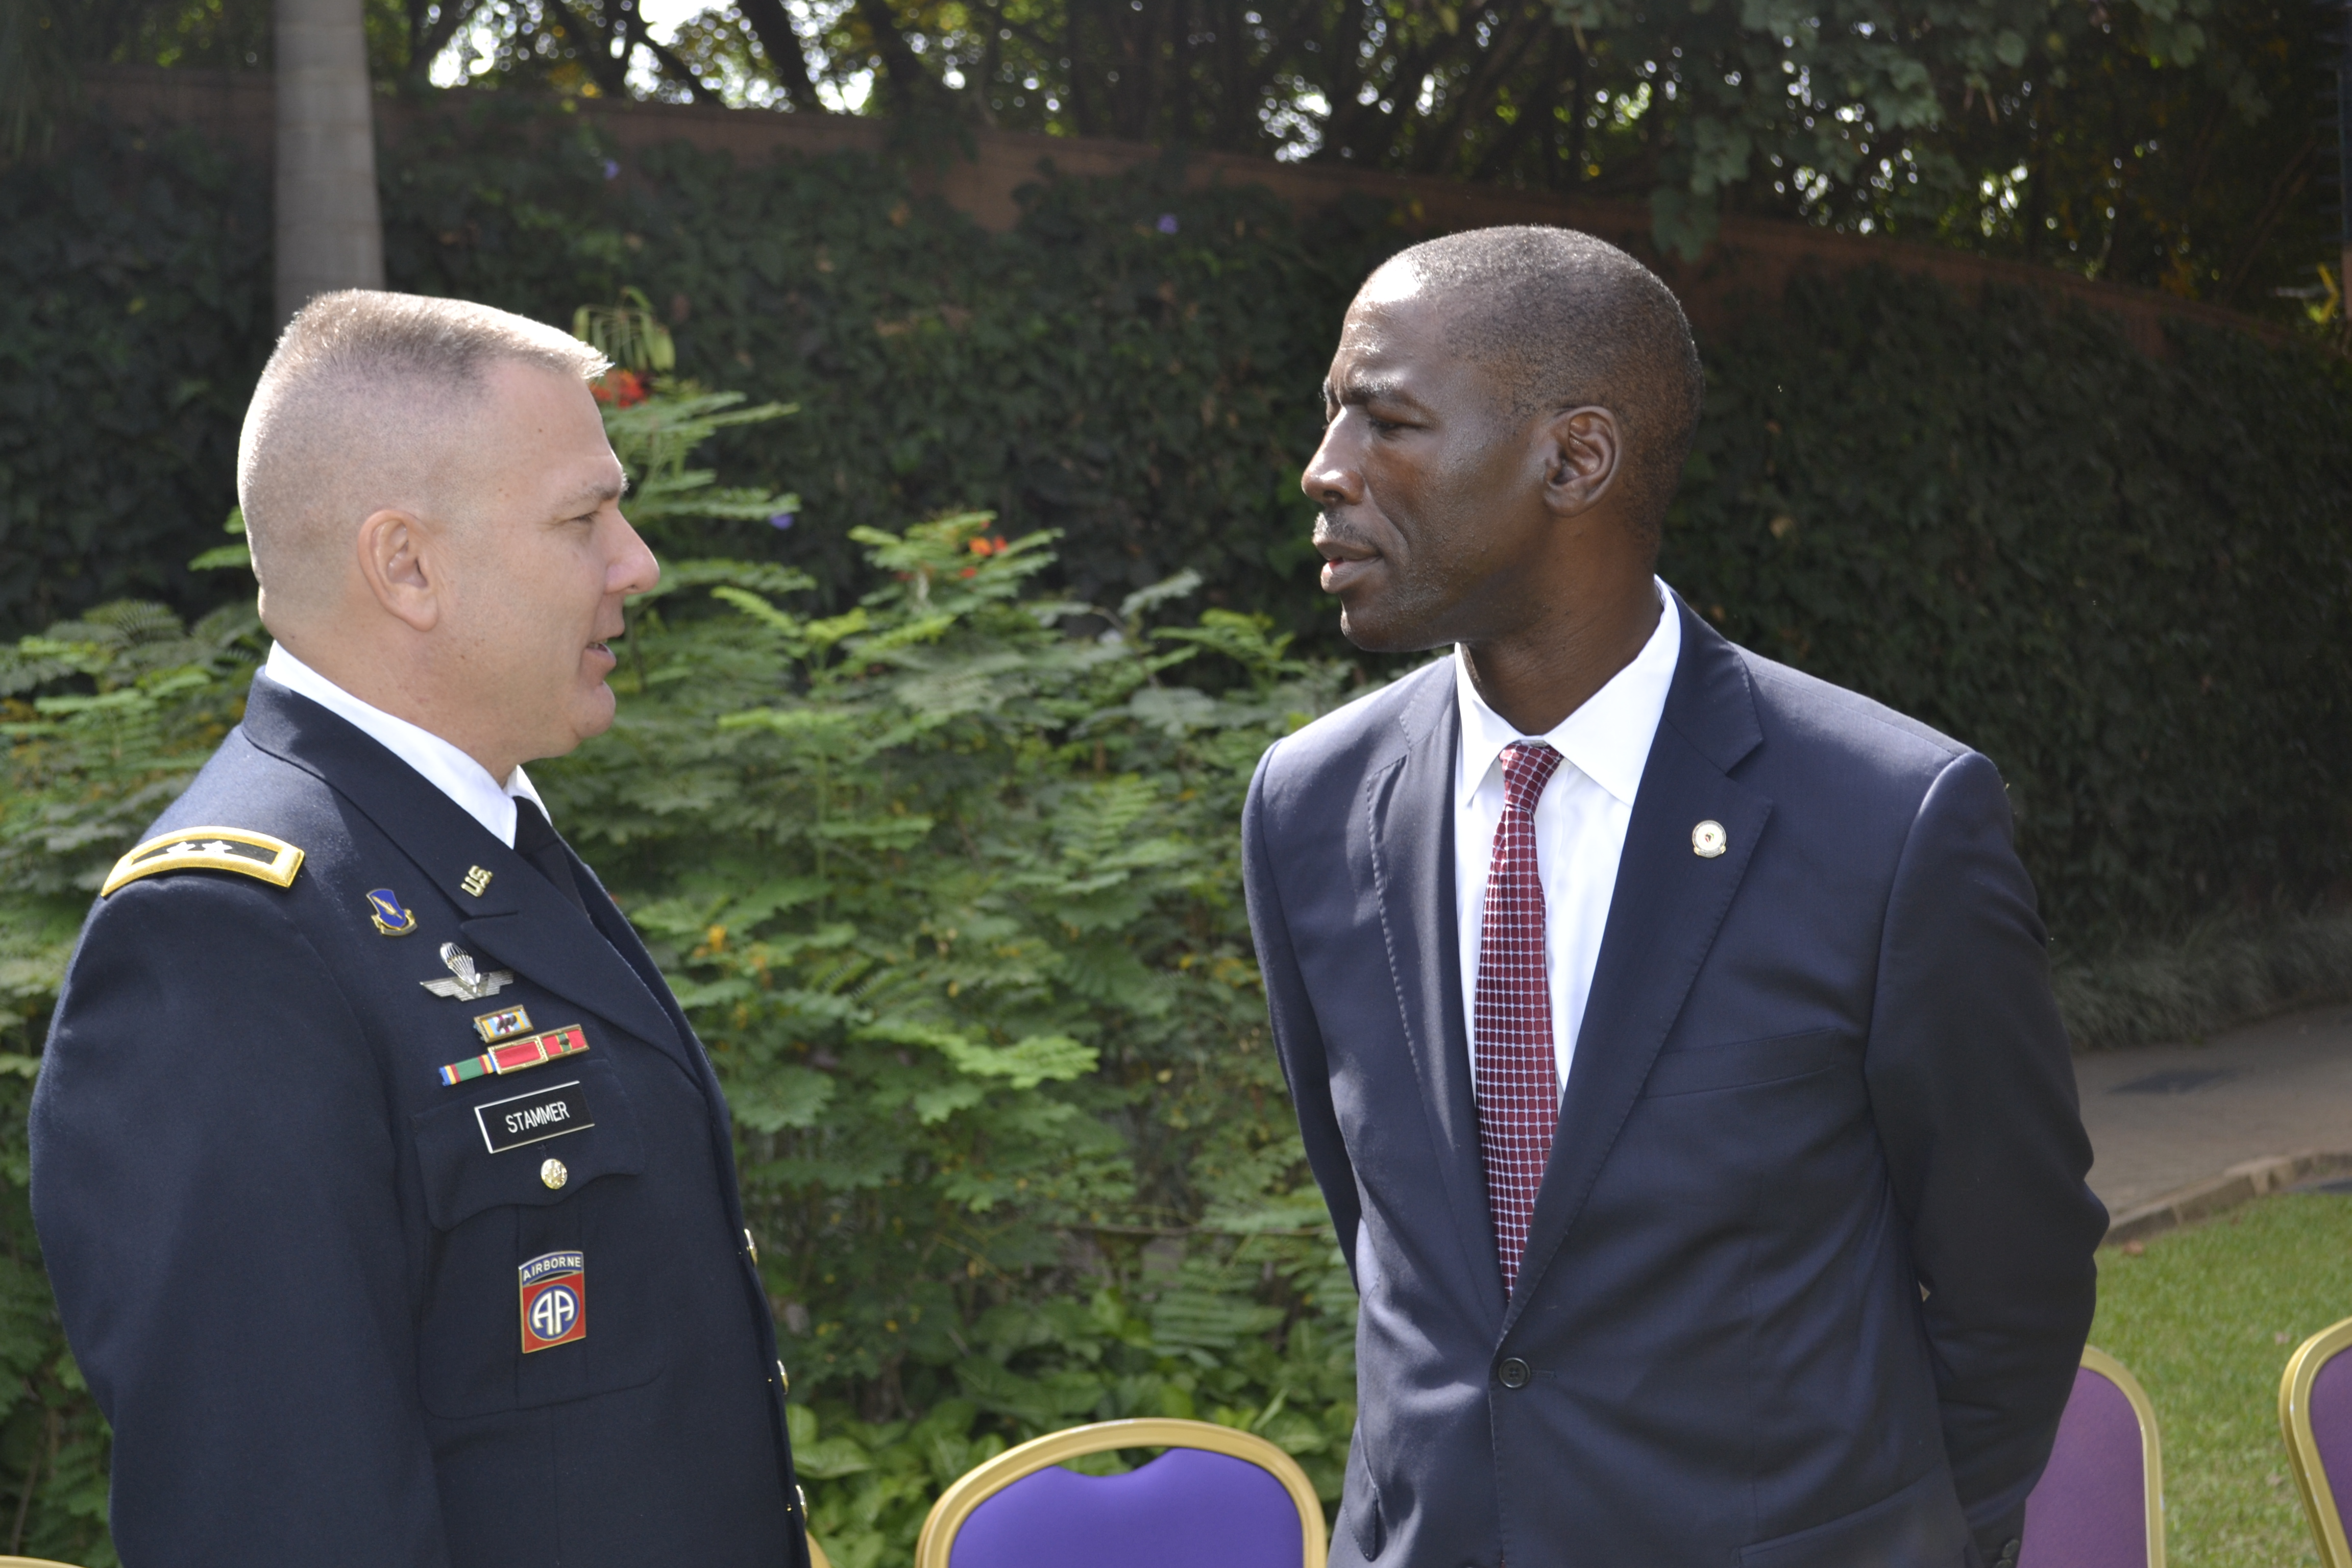 Dr. Raymond Gilpin, Academic Dean at the Africa Center for Strategic Studies speaks with Major General Mark R. Stammer, Commanding General, Combined Joint Task Force – Horn of Africa, during the Africa Center for Strategic Studies Managing Security Resources in Africa Seminar, Kampala, Uganda. (CJTF-HOA photo, Released)